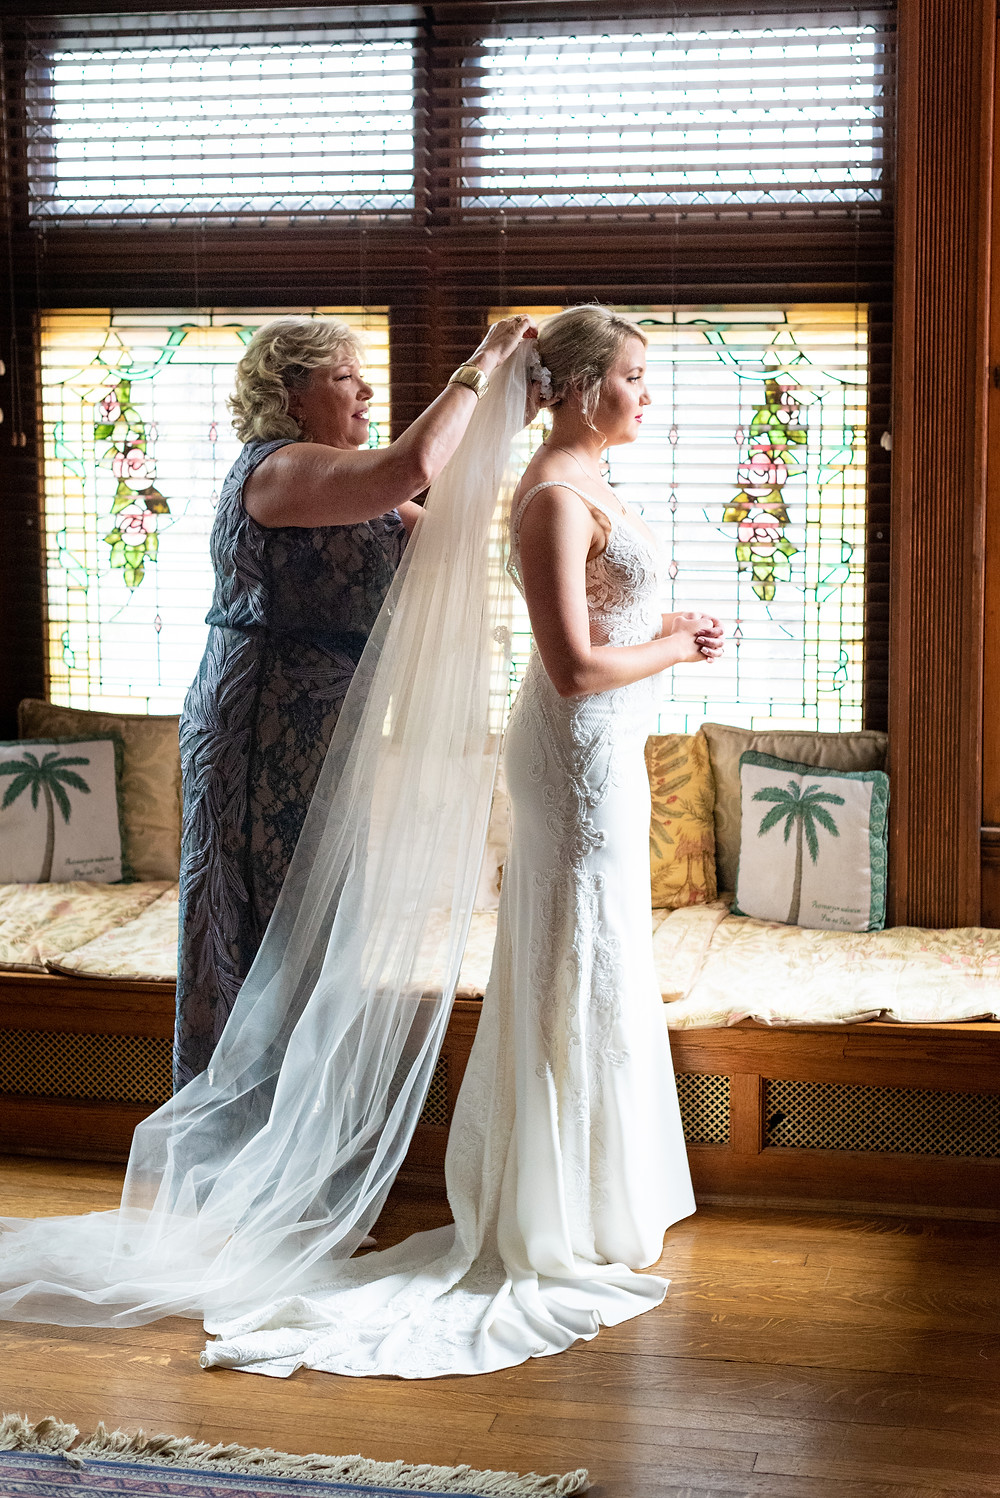 Mother of the bride putting the veil on the bride before the ceremony at The Parador Inn in Pittsburgh